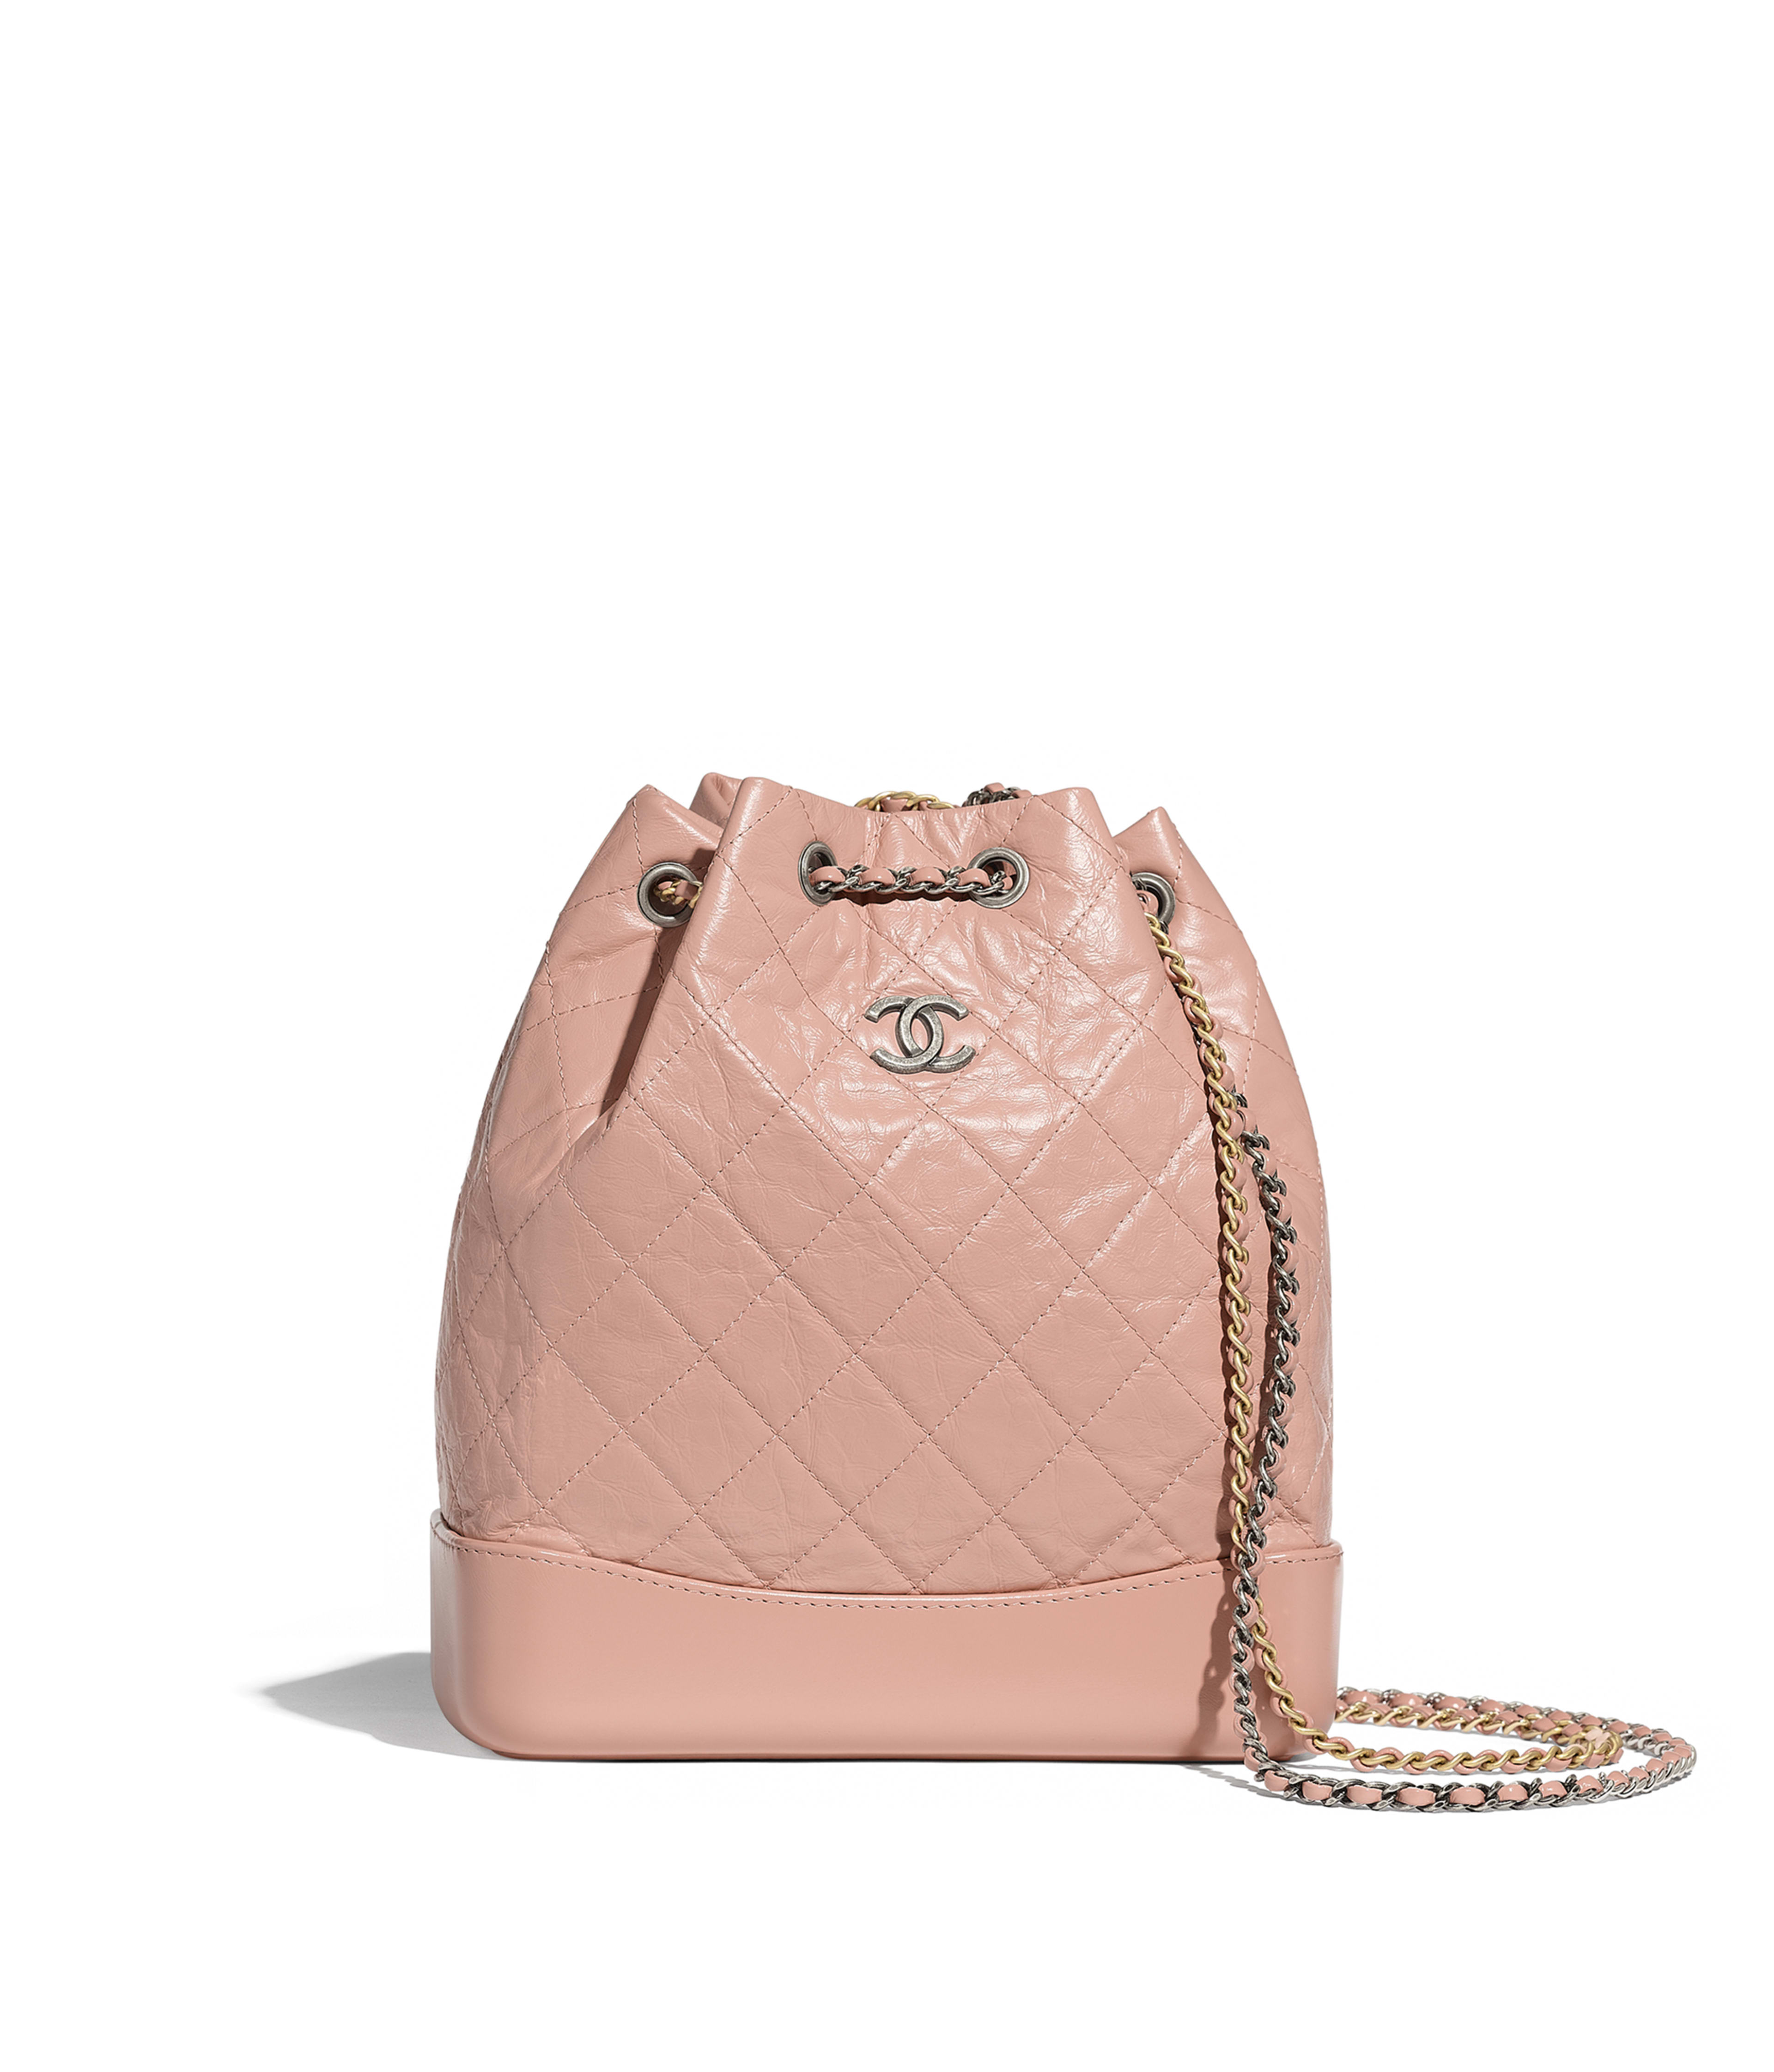 12568f155933 CHANEL'S GABRIELLE Backpack Aged Calfskin, Smooth Calfskin, Silver-Tone &  Gold-Tone Metal, Light Pink Ref. A94502Y61477N0430